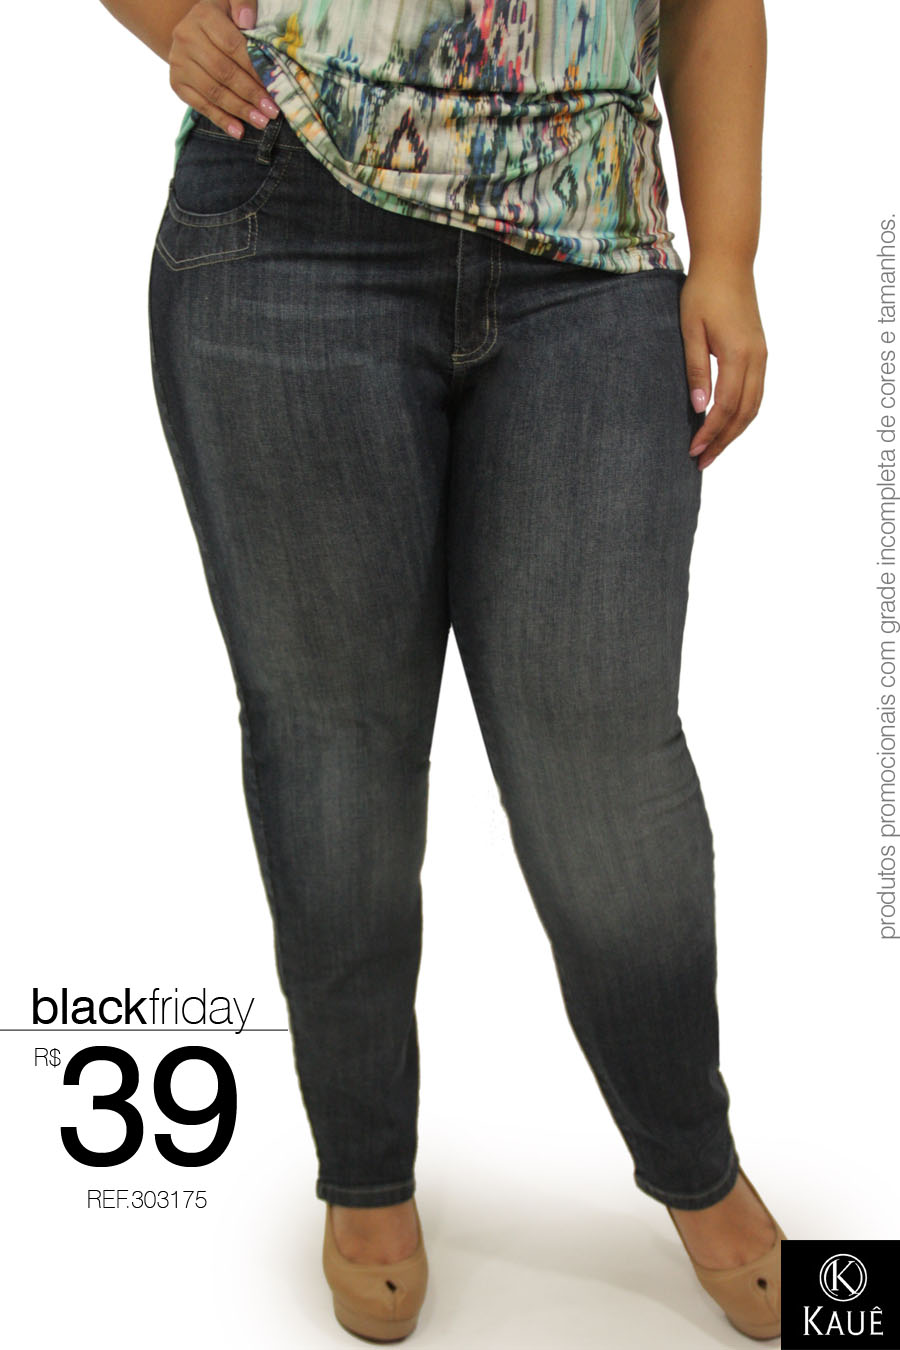 530424ea9a3991 black-friday-kauê-plus-size-calça-jeans-barata | Blog Kauê Plus Size